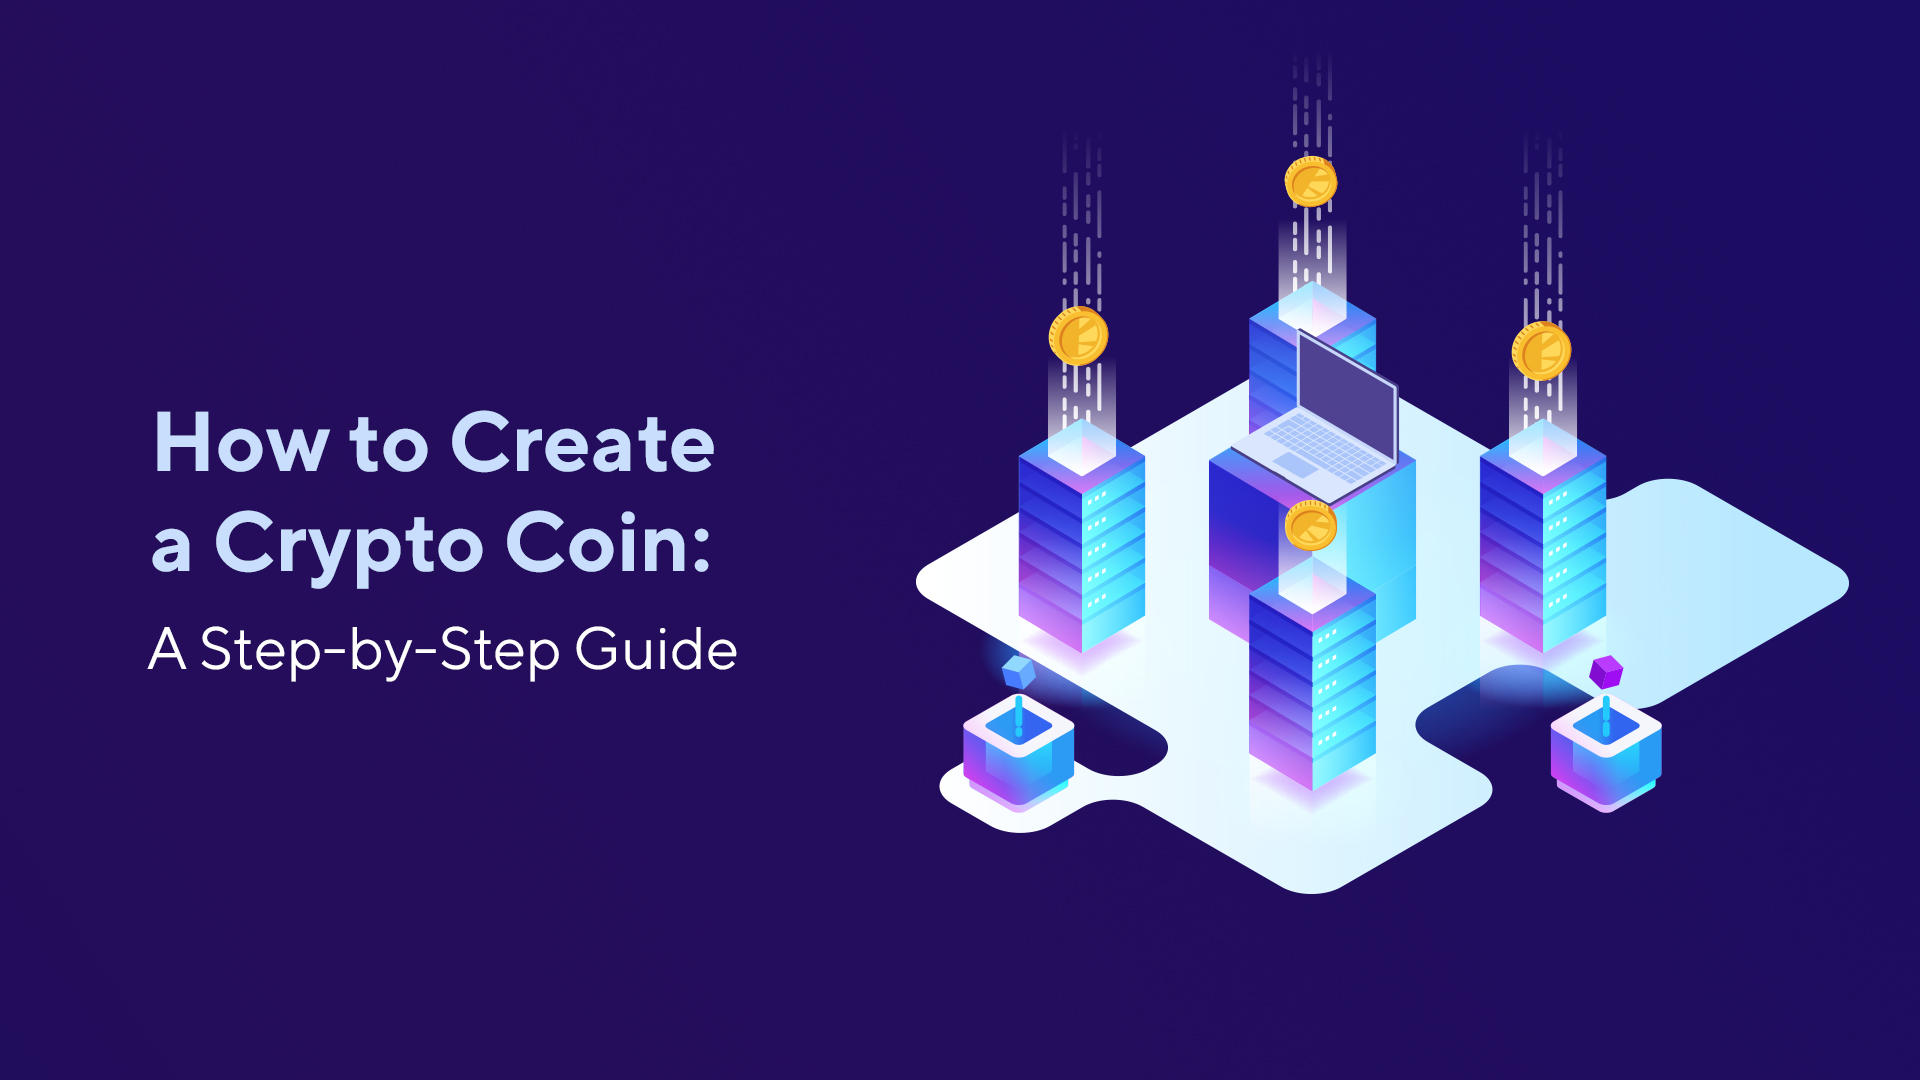 How to Create a Crypto Coin: A Step-by-Step Guide